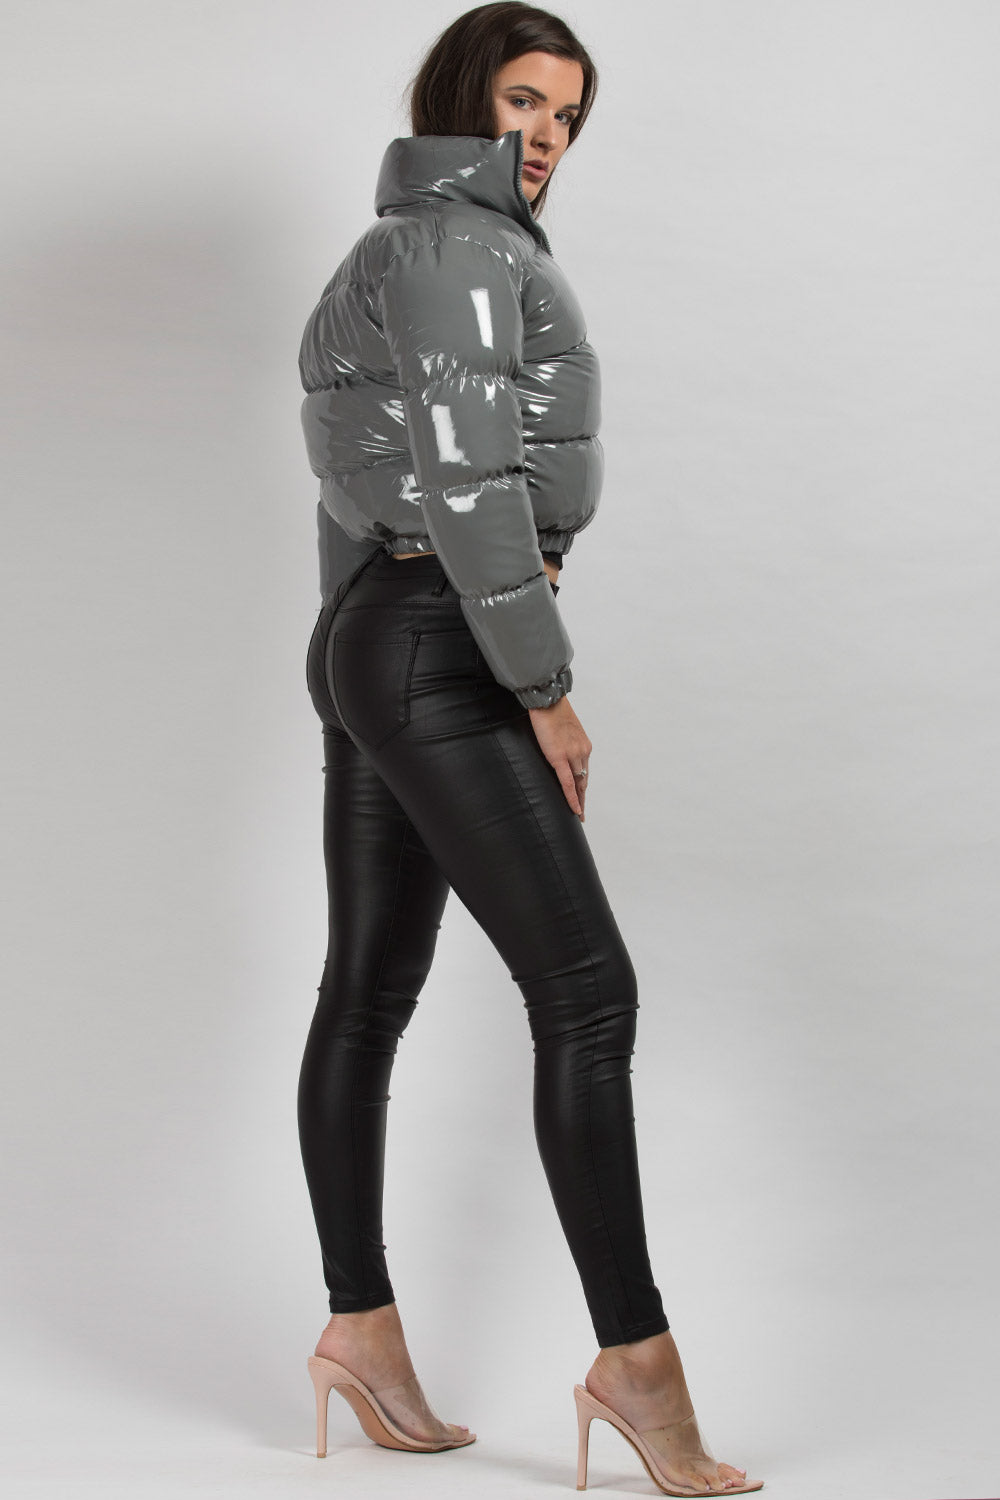 wet look shiny puffer jacket cropped grey